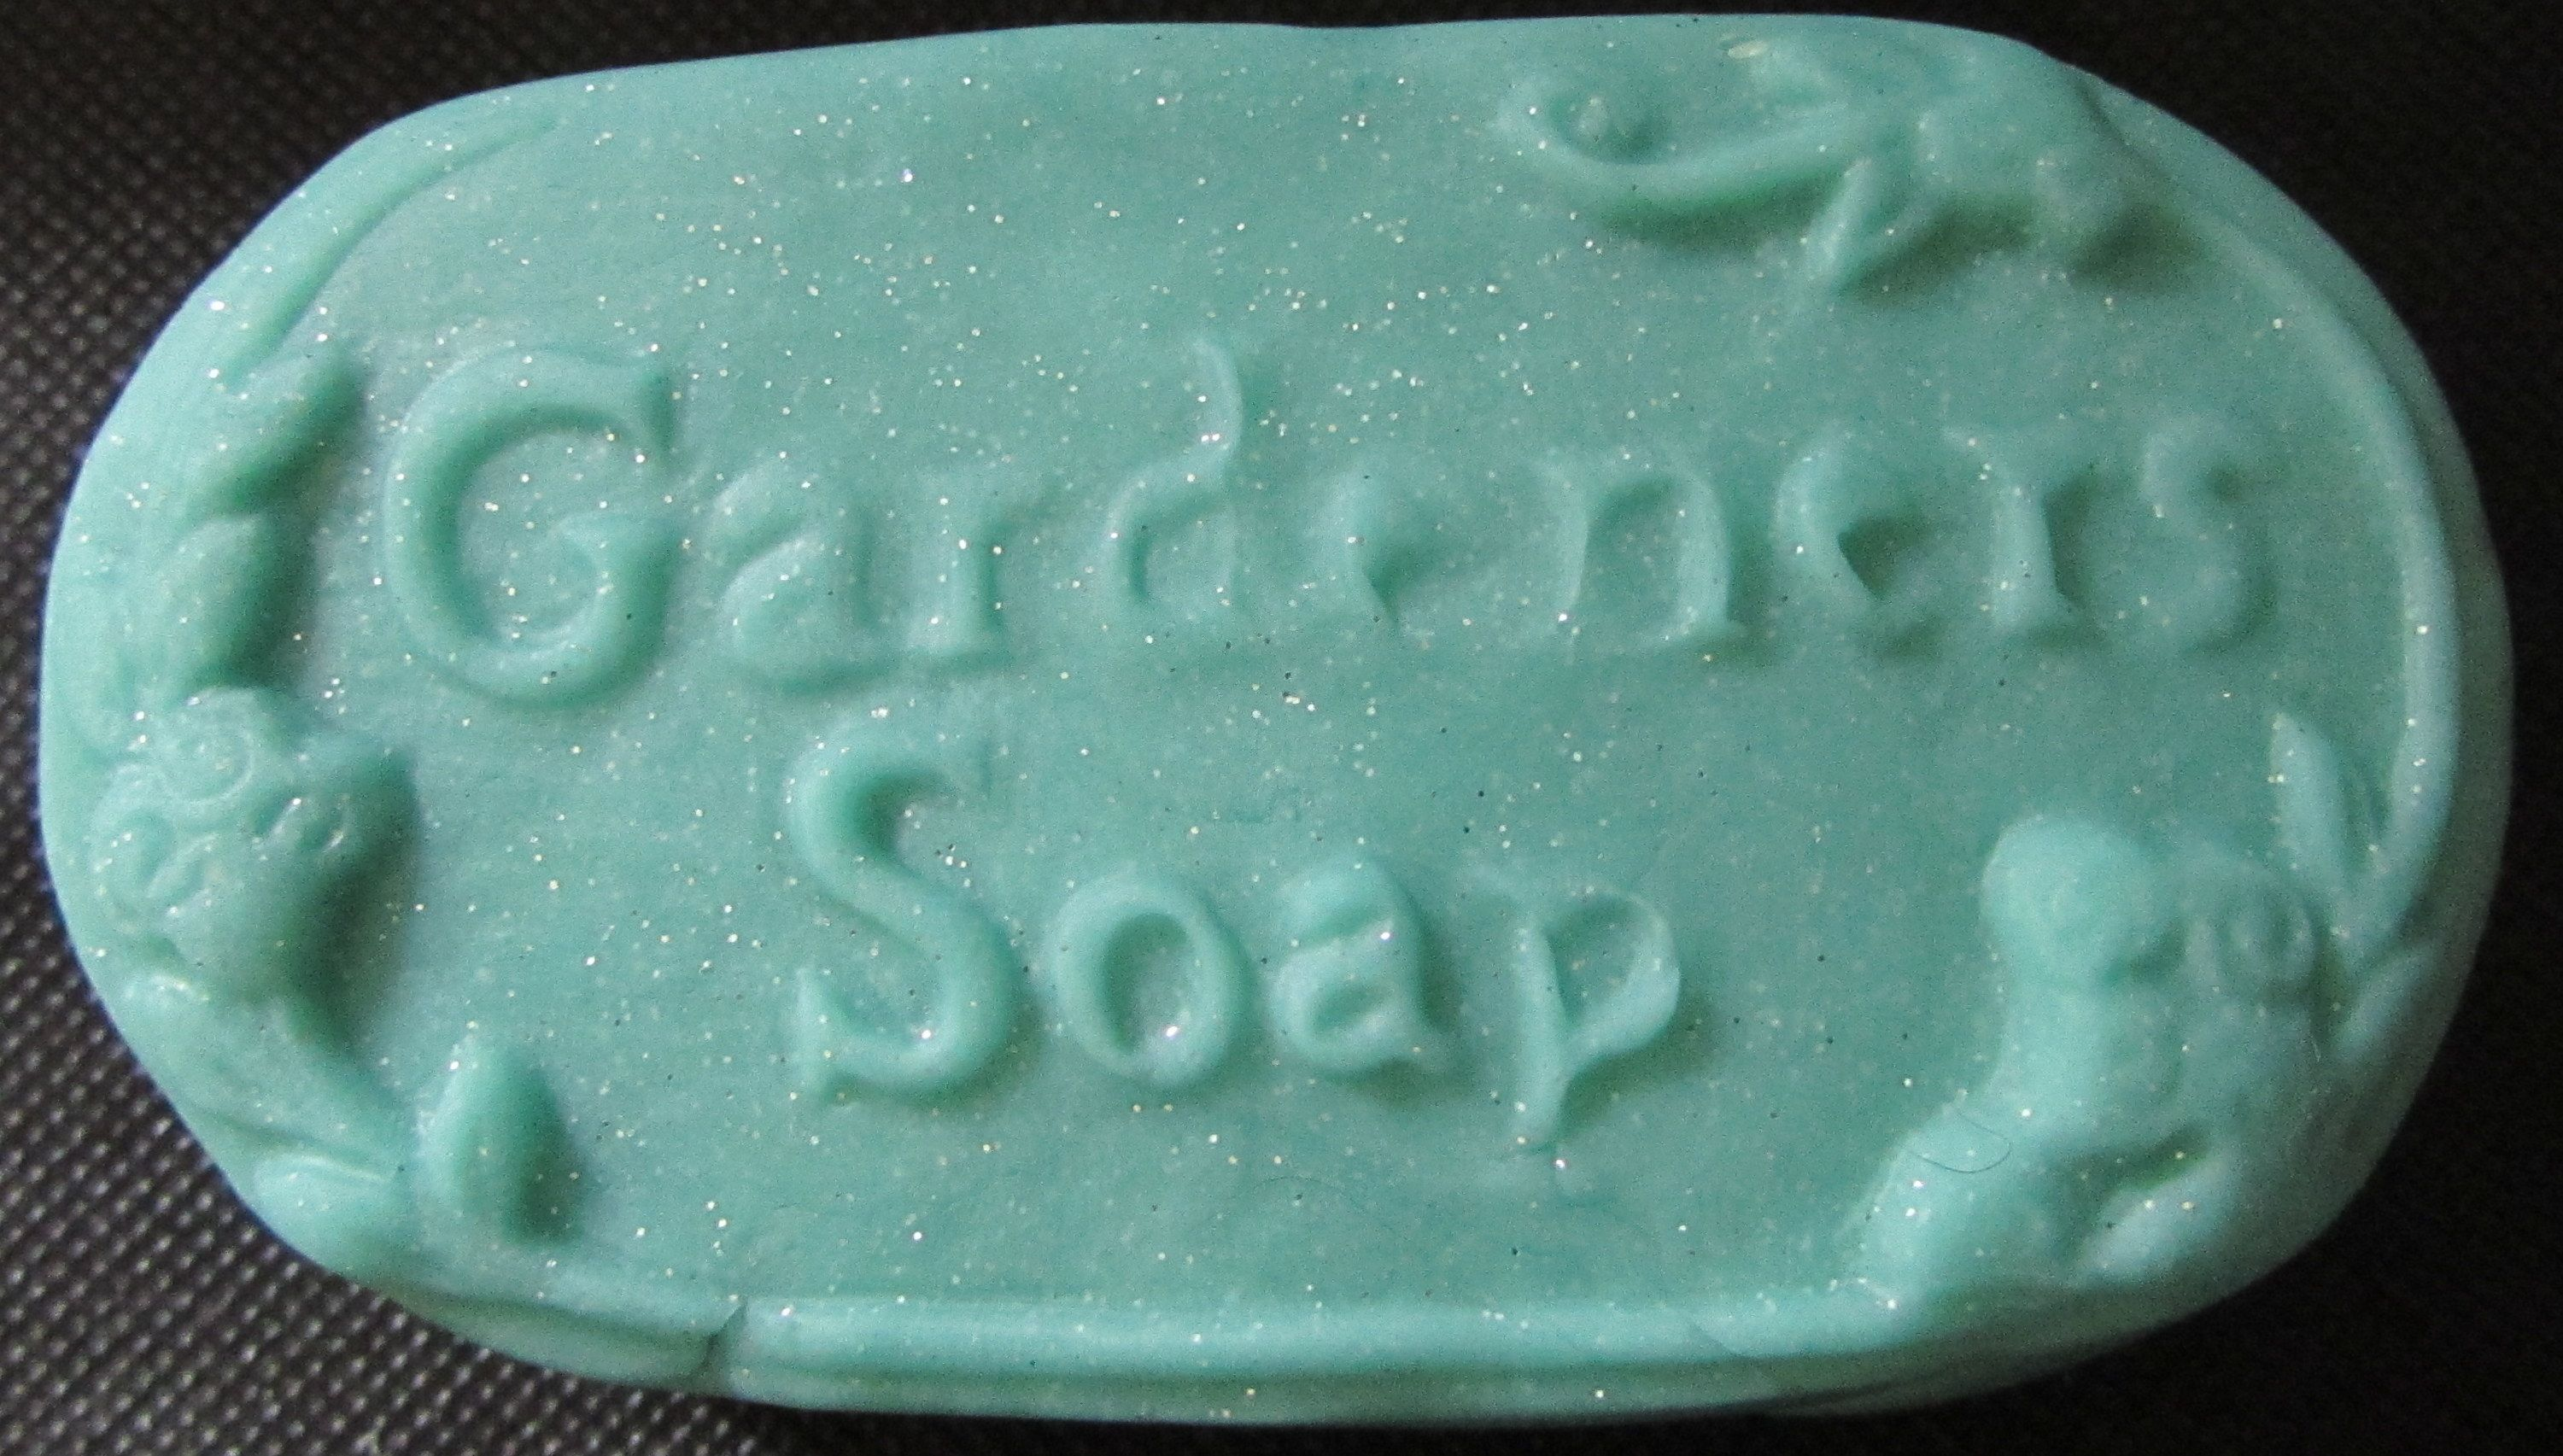 "Gardeners Soap    $5.75 (Top Seller) Gardeners Soap Size: 4 1/4"" x 2 1/2"" x 1"" Cavity Size: 4.75 oz. You can add your own fragrance, color, add-in and soap base. www.Making-ScentsSoaps.com"